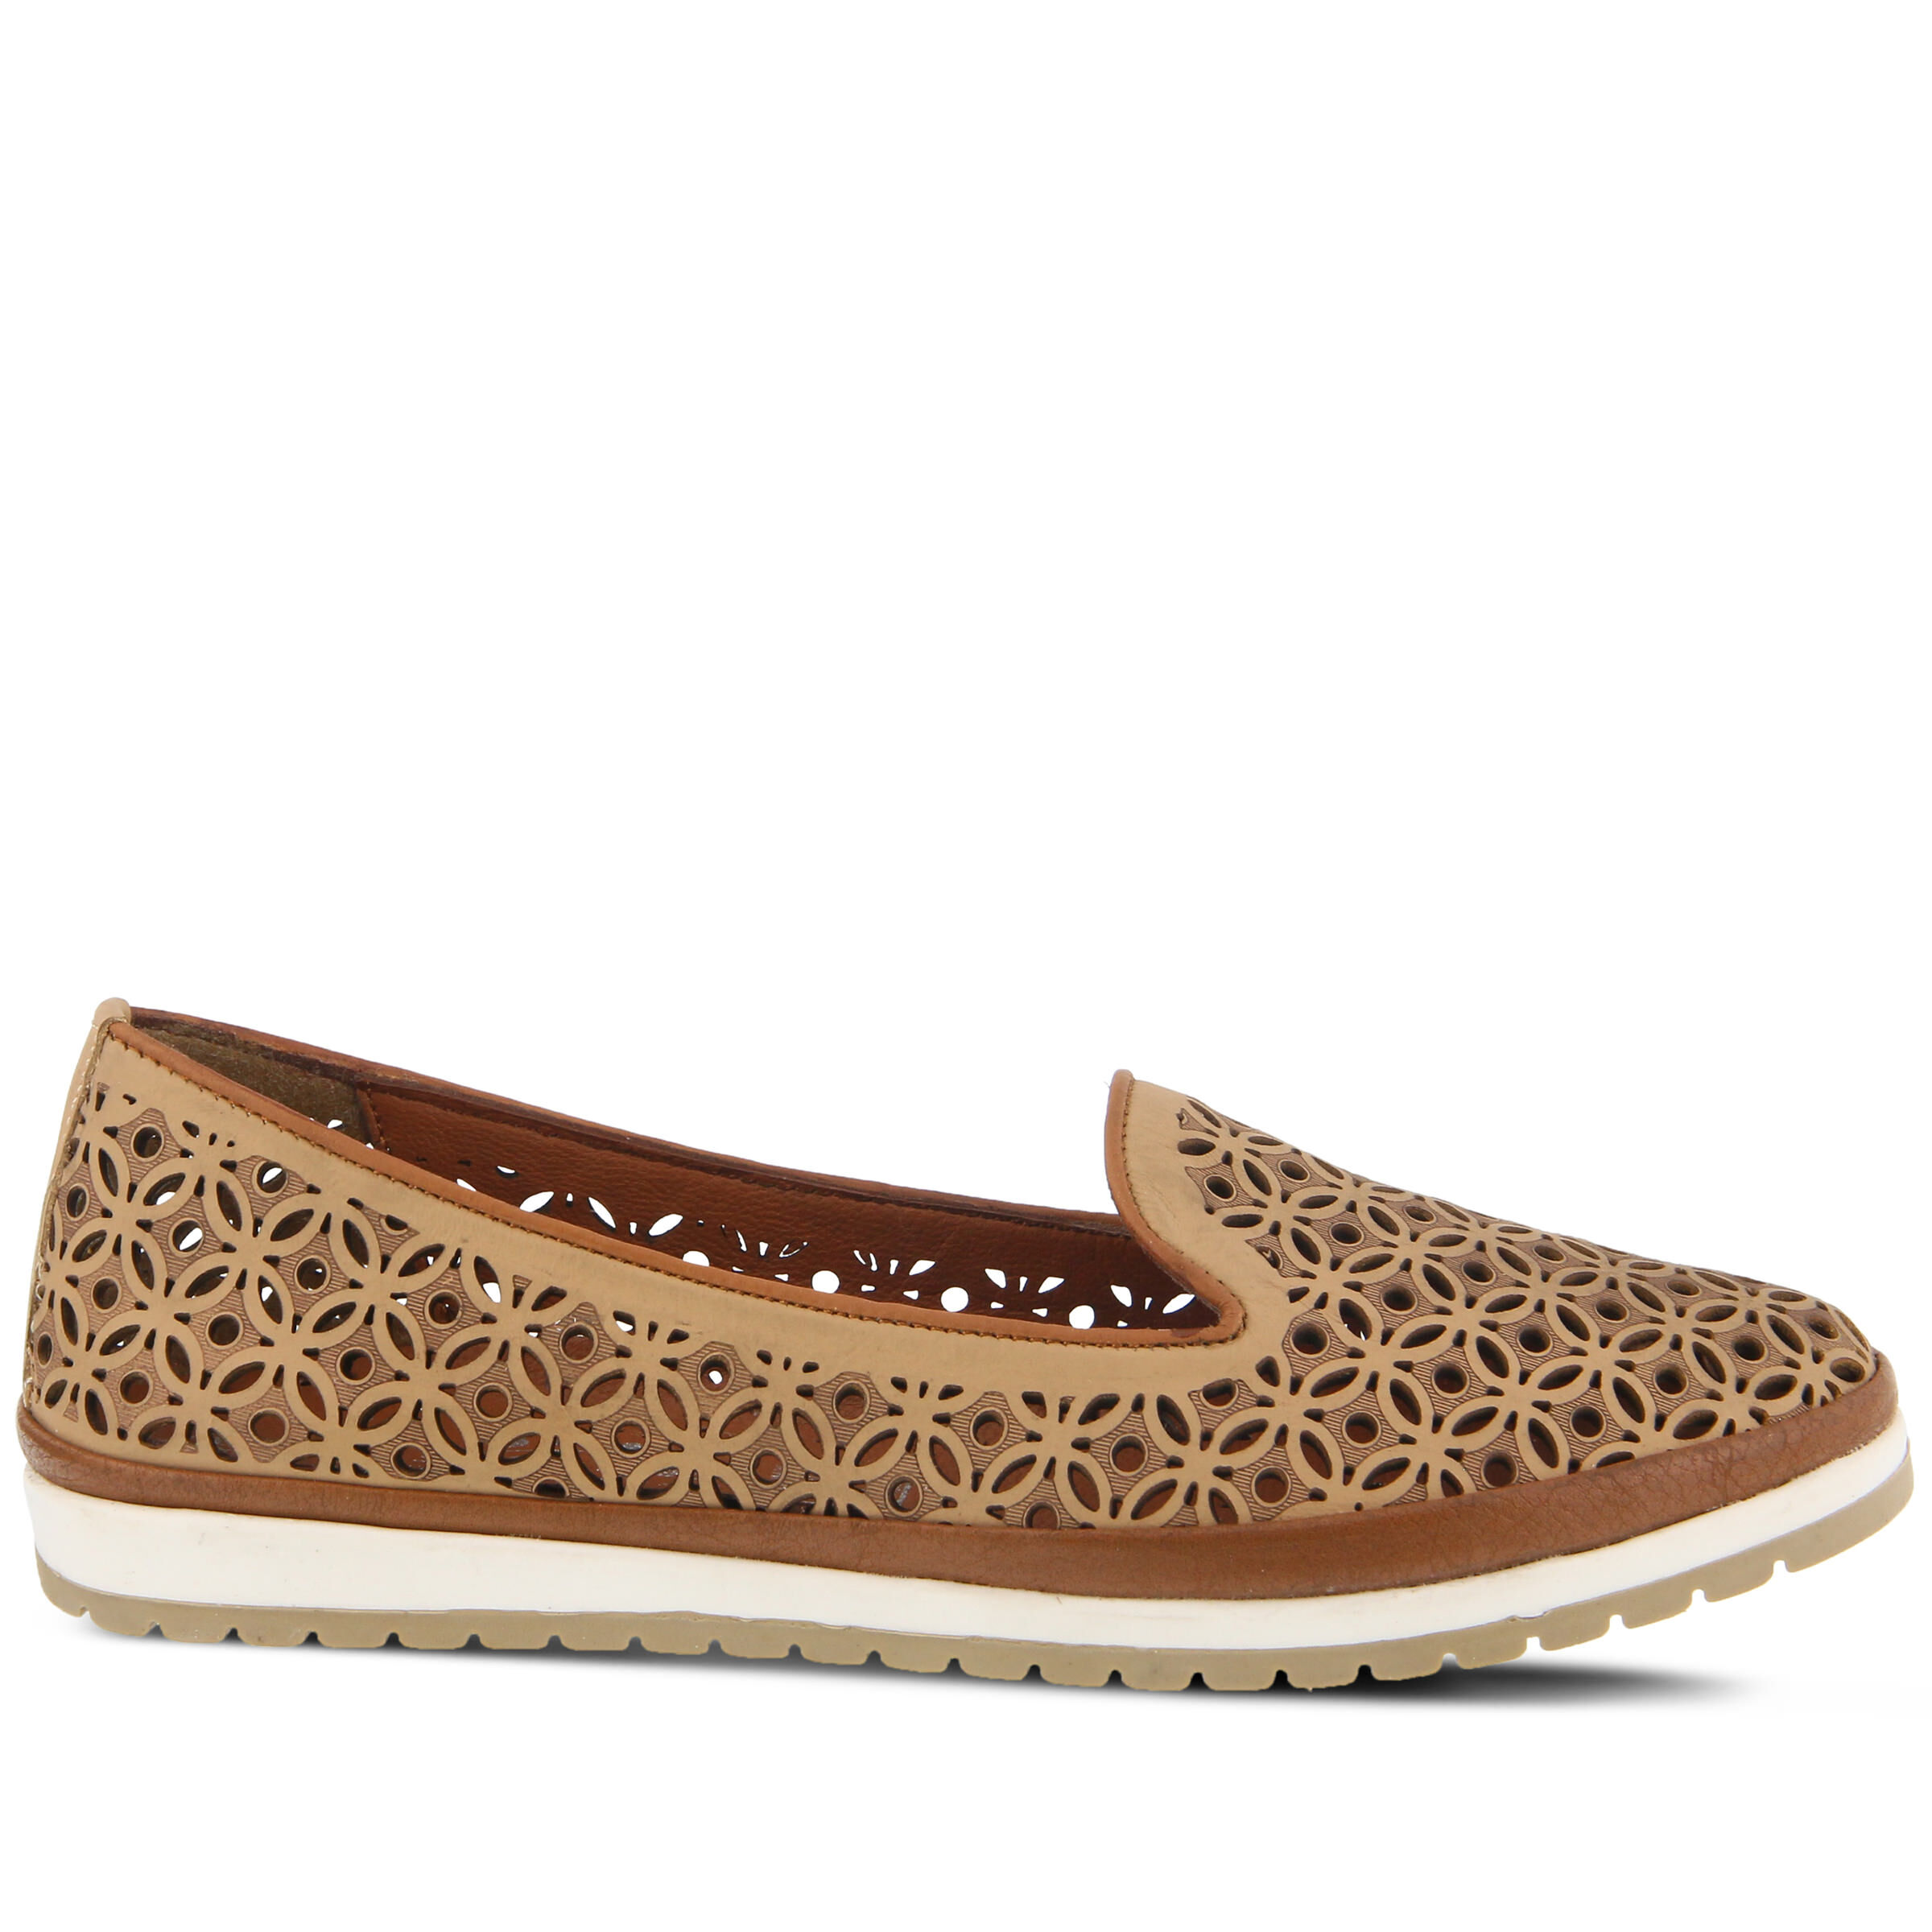 purchase clearance Women's SPRING STEP Tulisa Flats Taupe